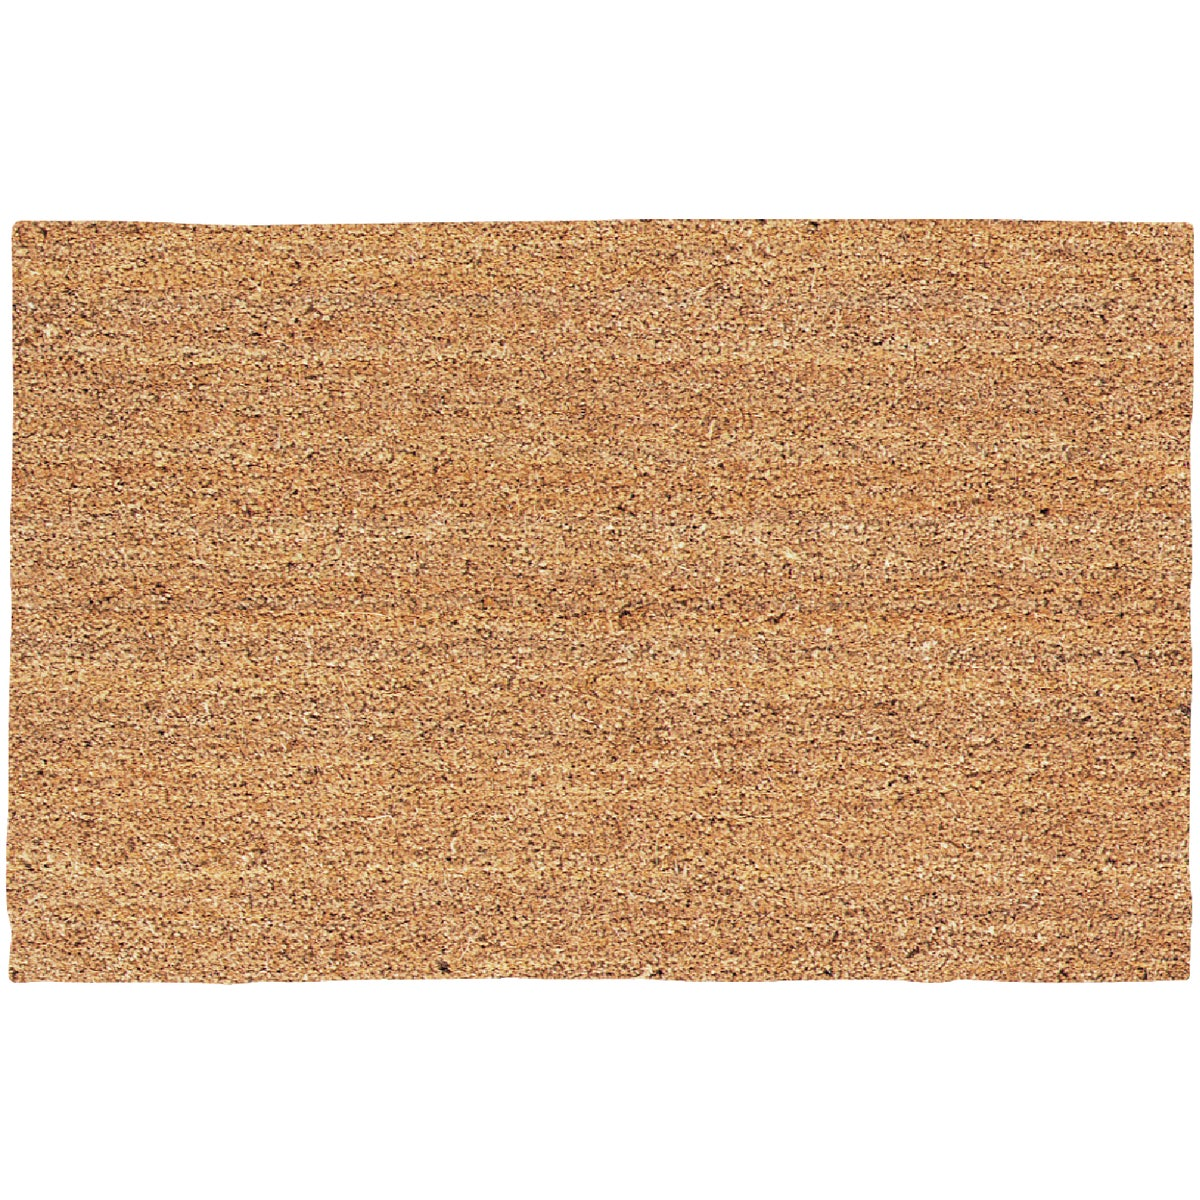 NATURAL TAN DOORMAT